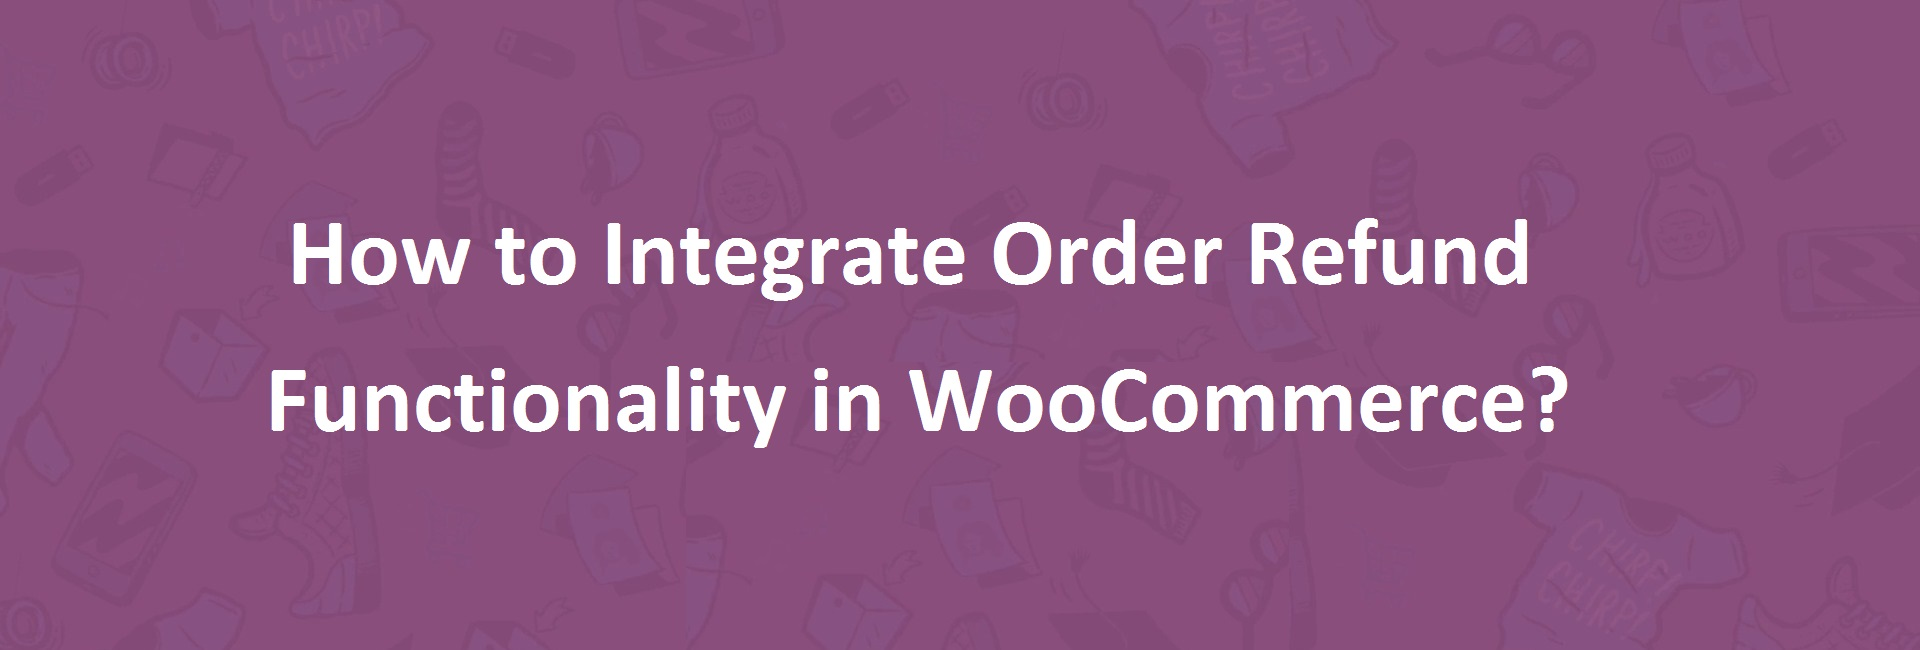 How to Integrate Order Refund Functionality in WooCommerce?